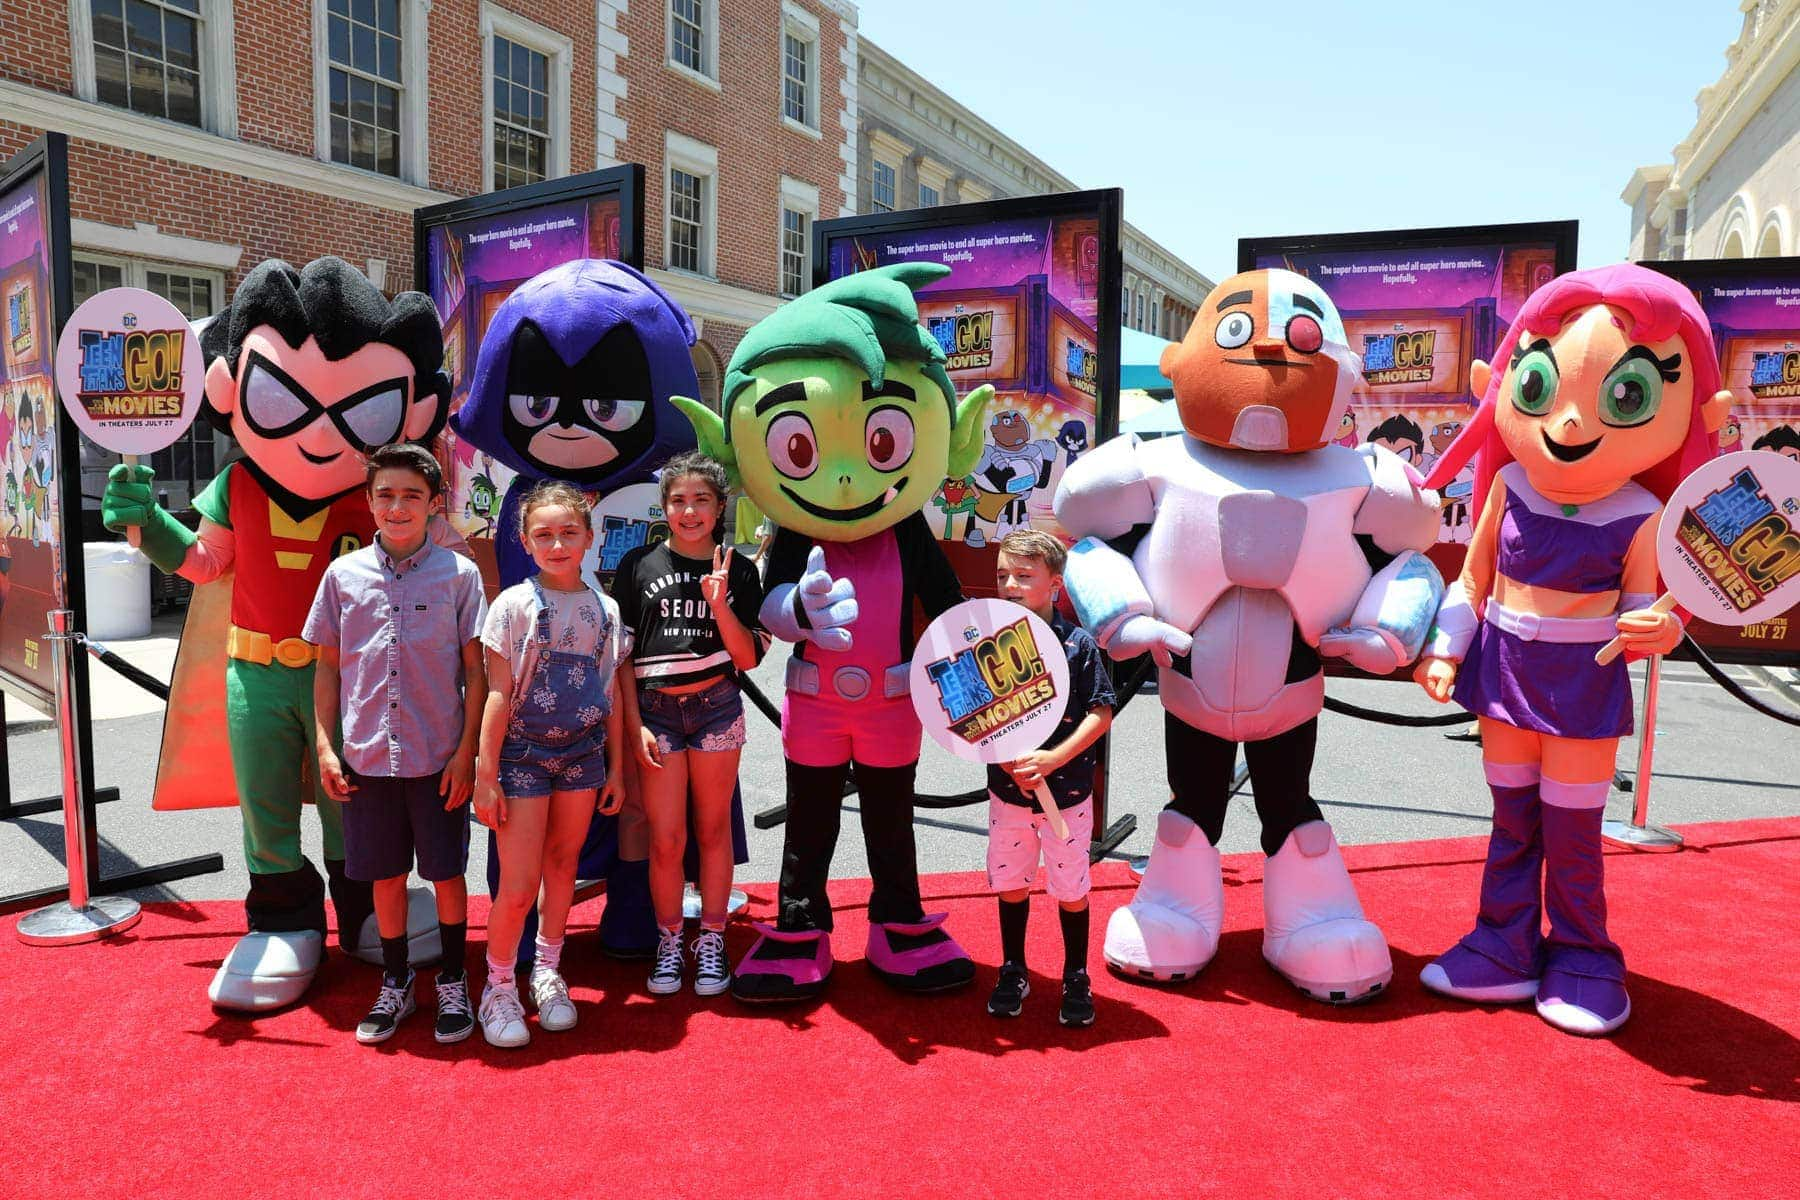 Young Kids Having a Picture Taken With Mascots #hollywood #warnerbrothers #teentitansgotothemovies #citygirlgonemom